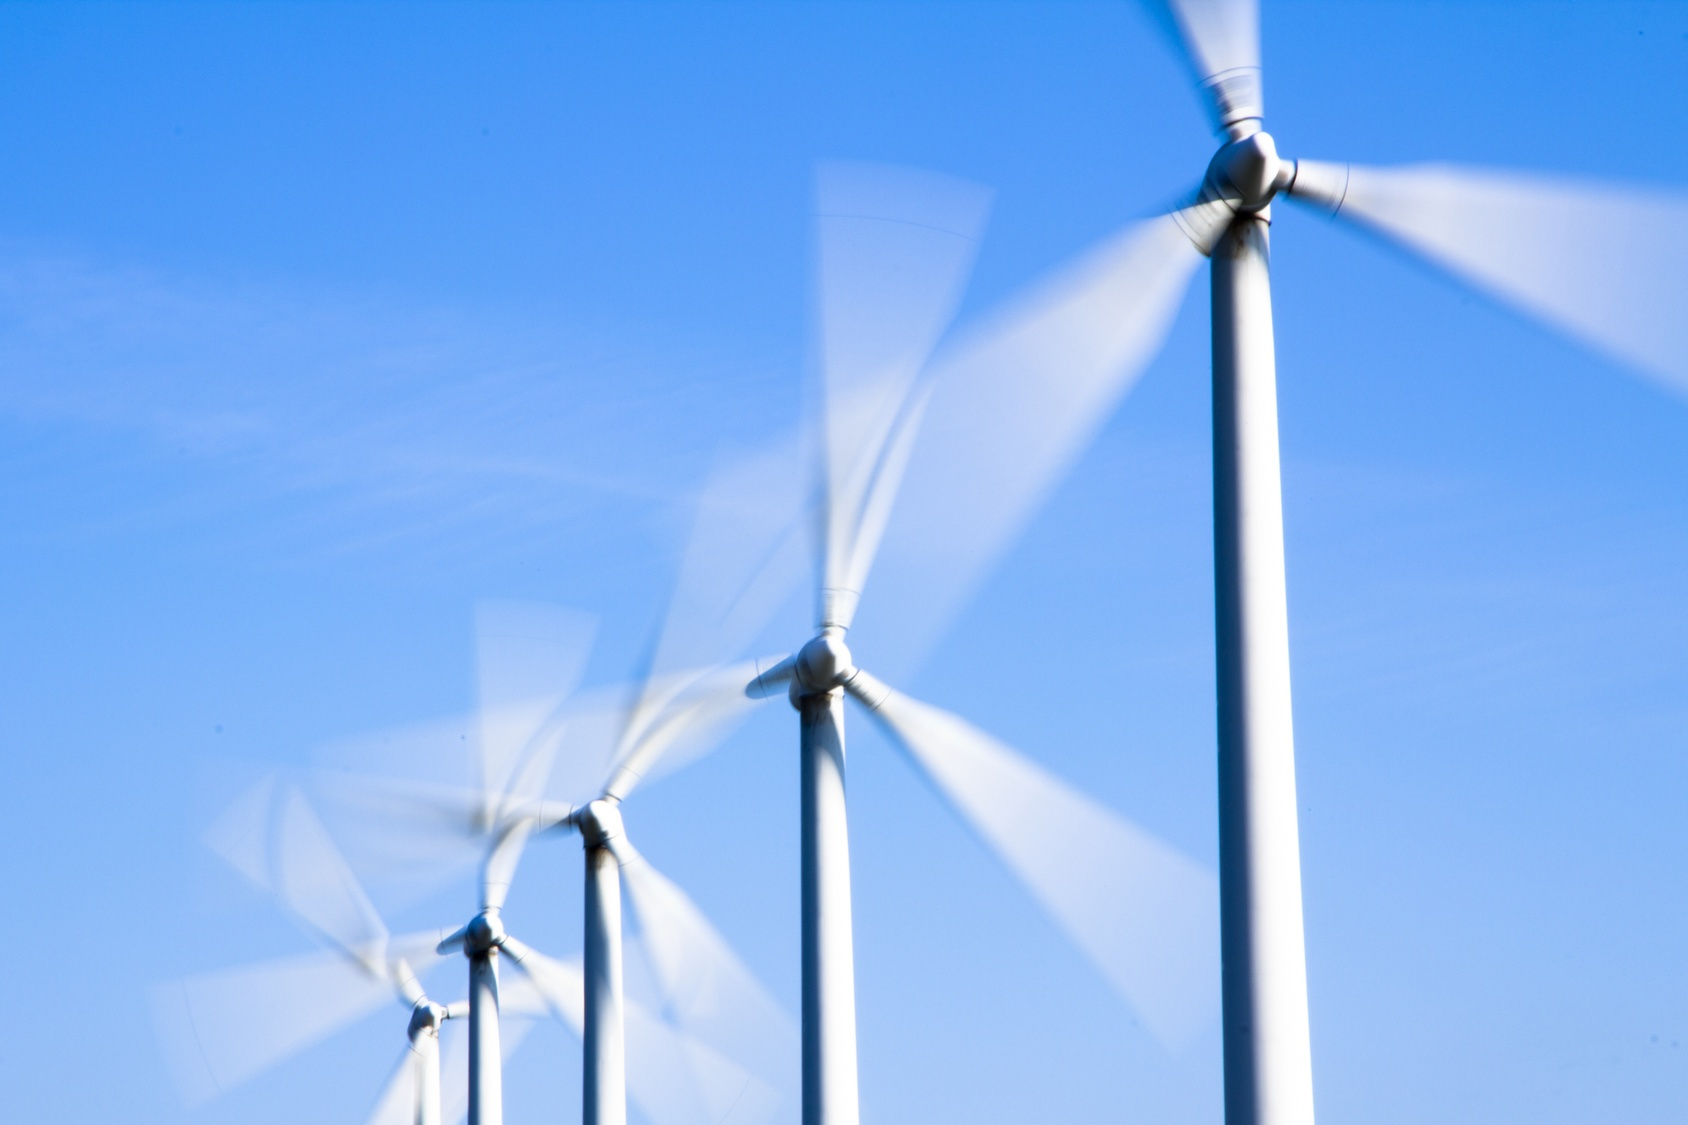 Windmills provide clean, eco-friendly energy to the world.